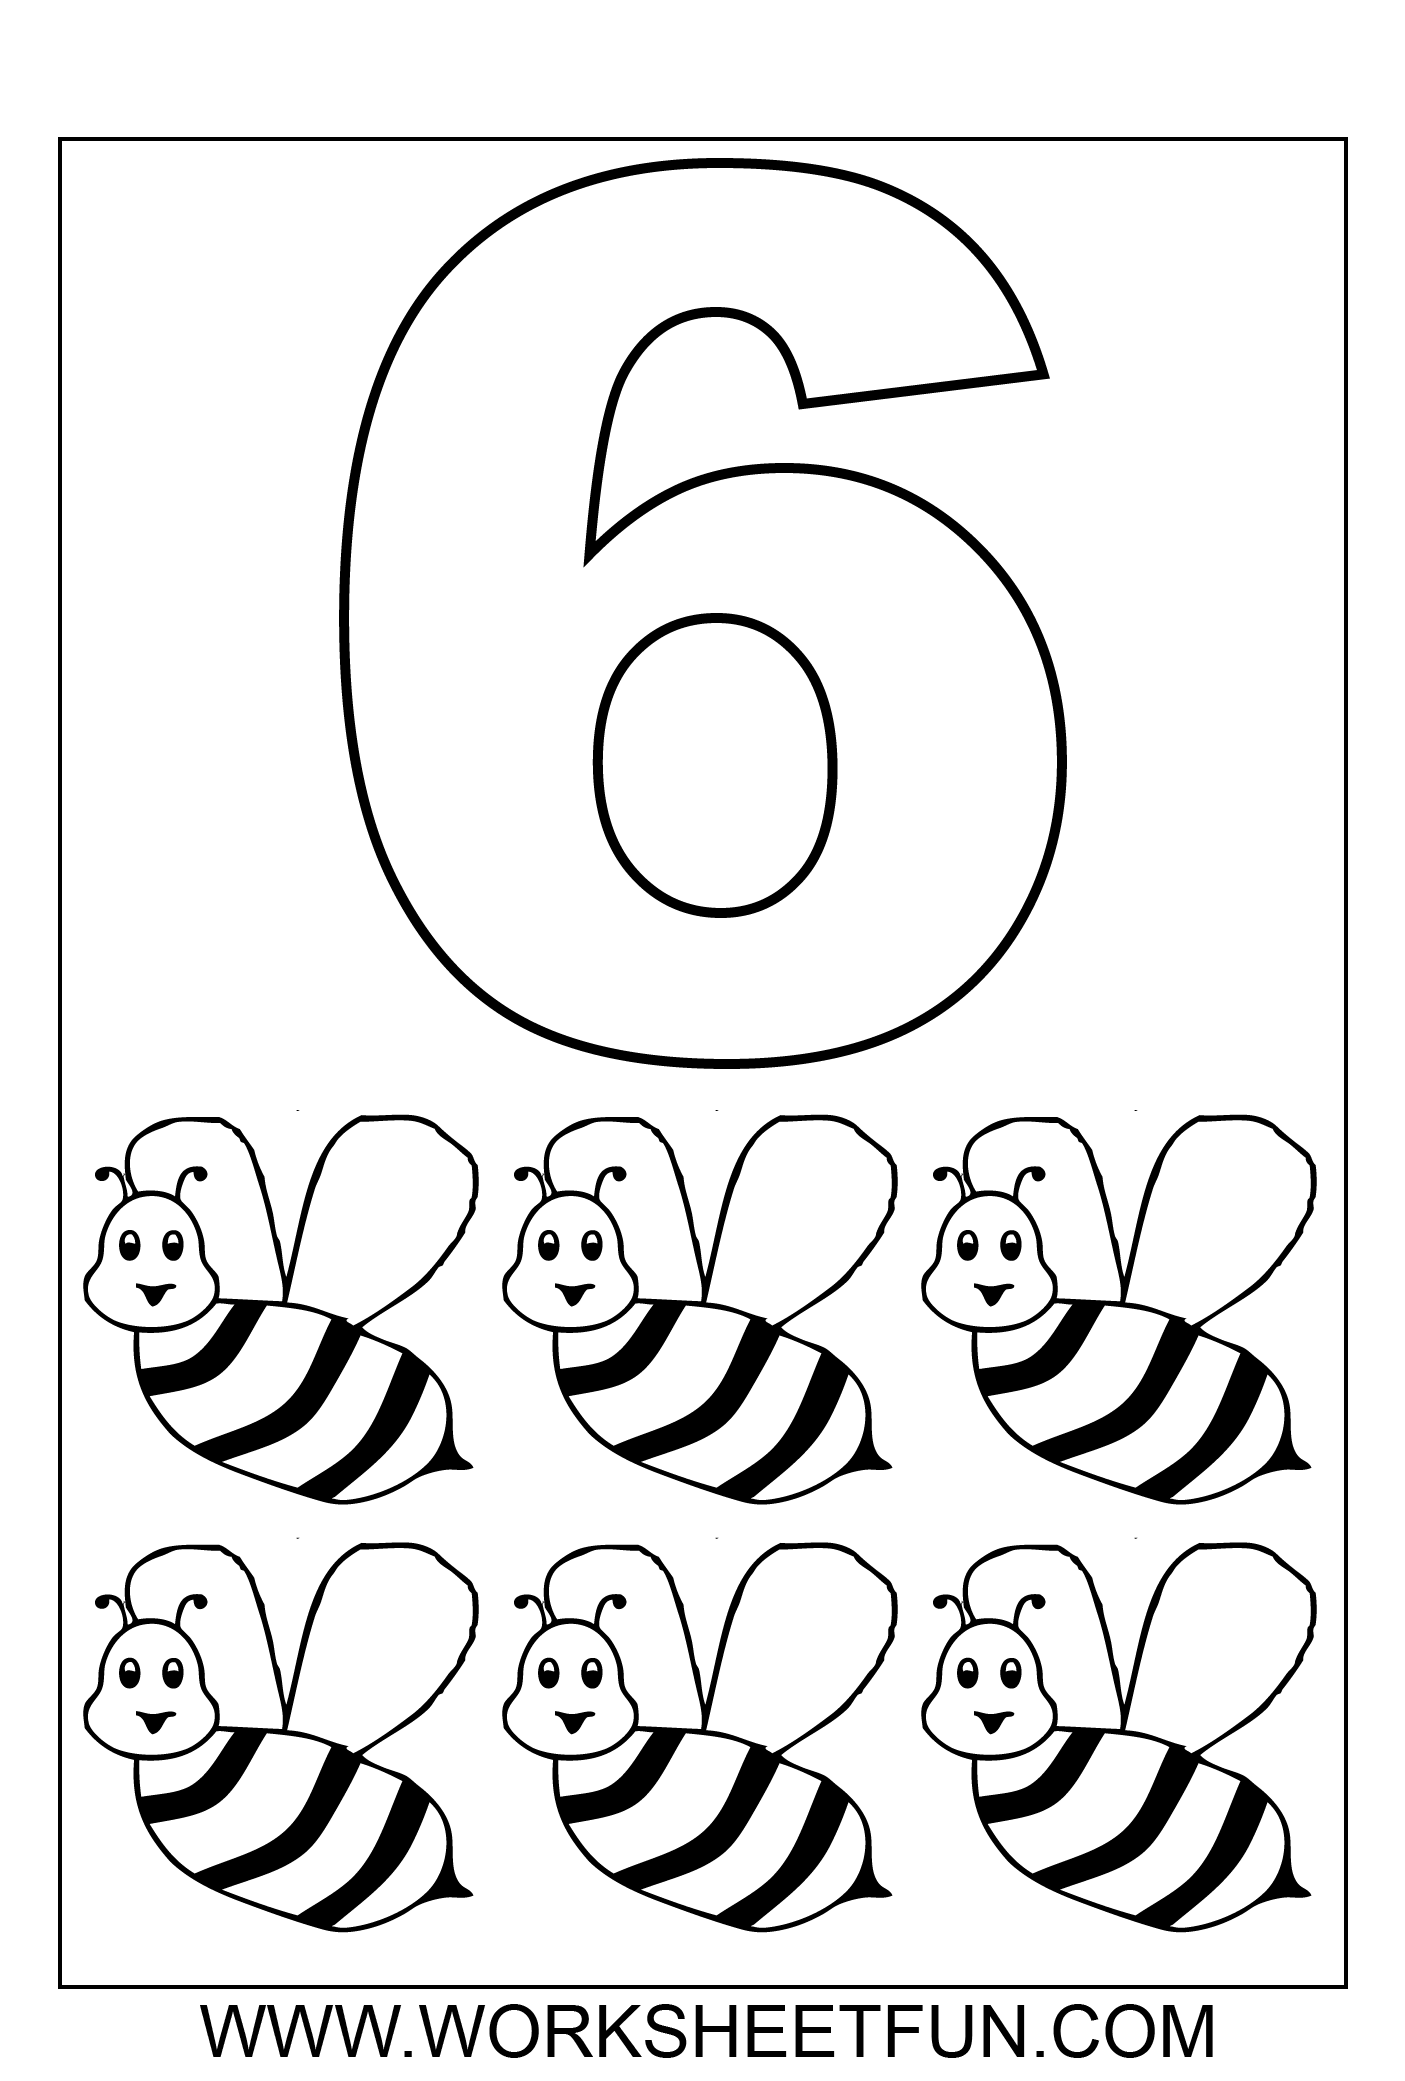 Color worksheets by number - Number Coloring 1 10 Ten Worksheets